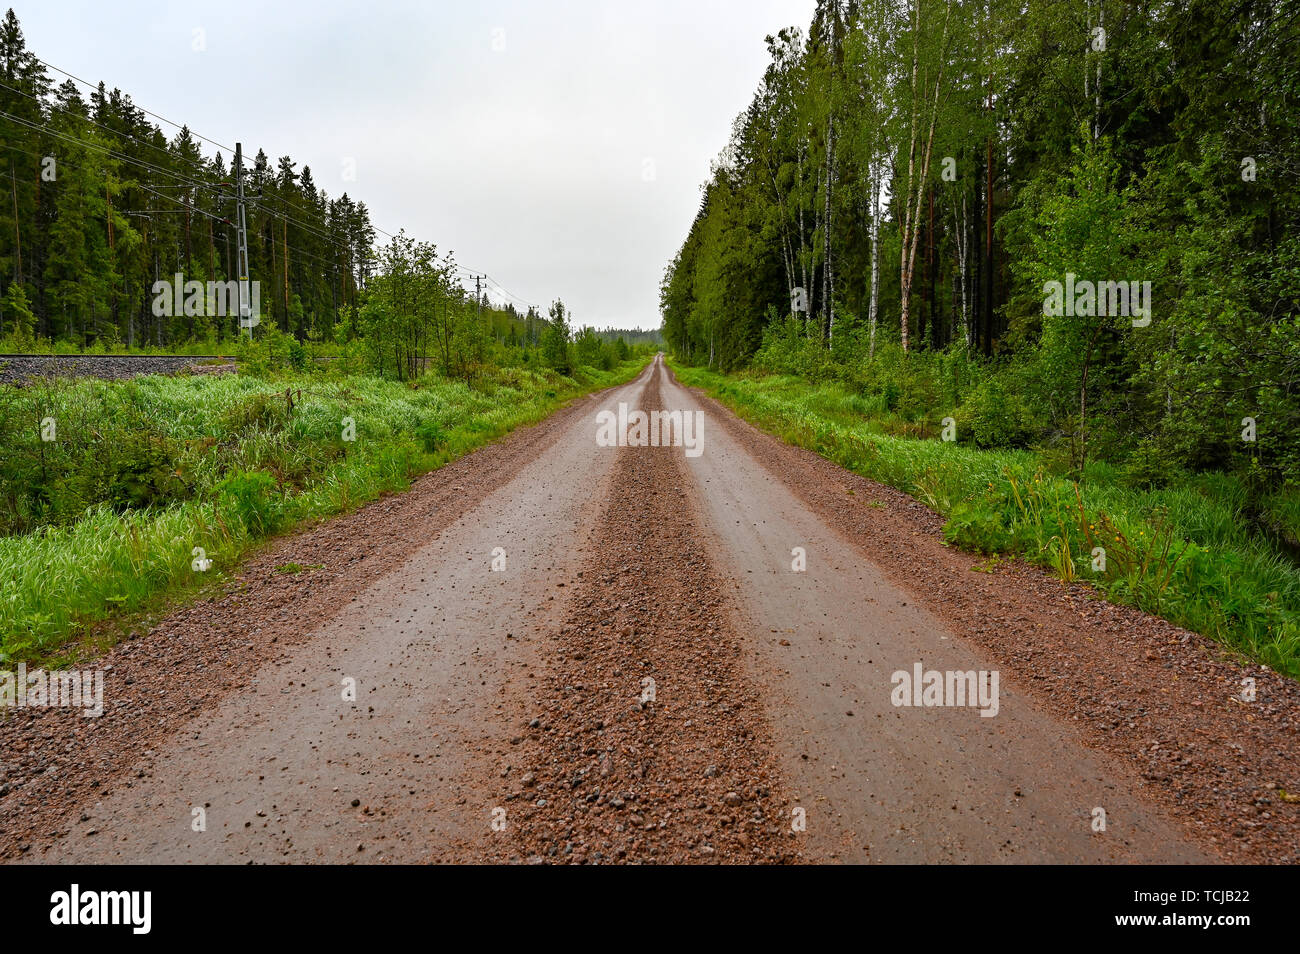 Straight gravel road through swedish forest in may 2019 - Stock Image